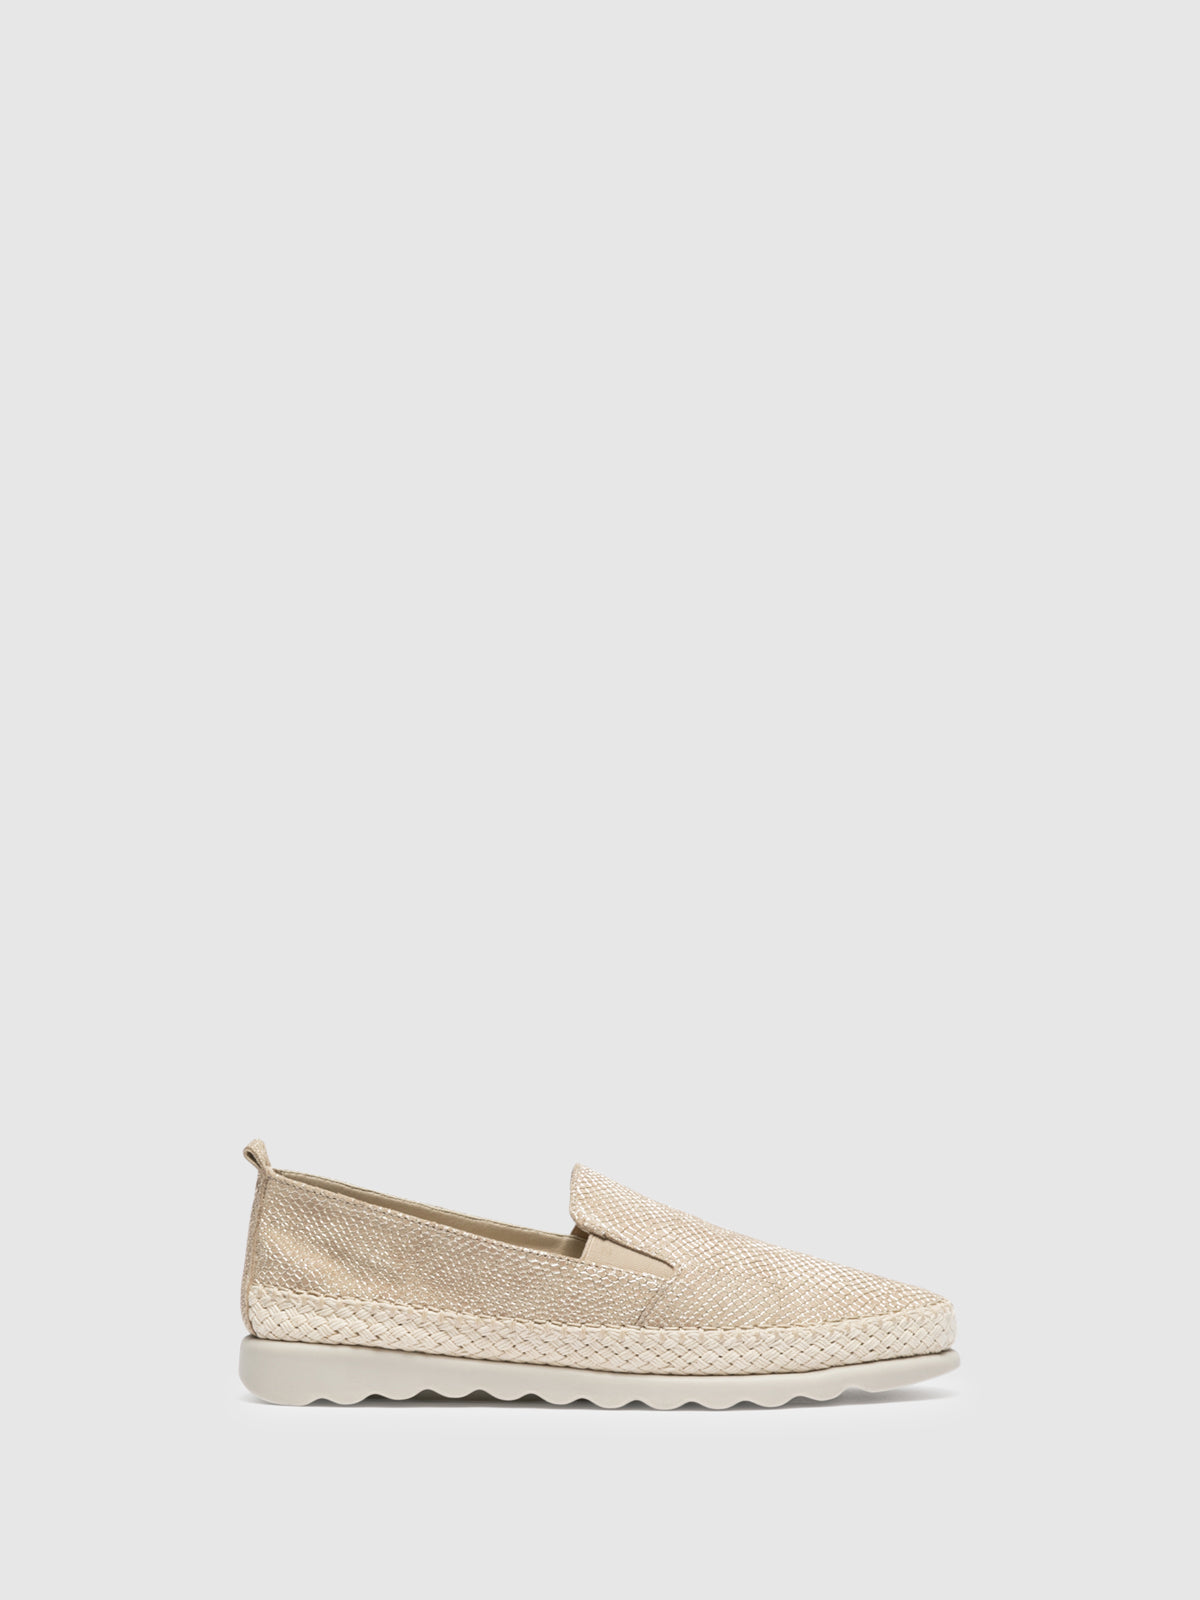 The Flexx Beige Slip-on Trainers